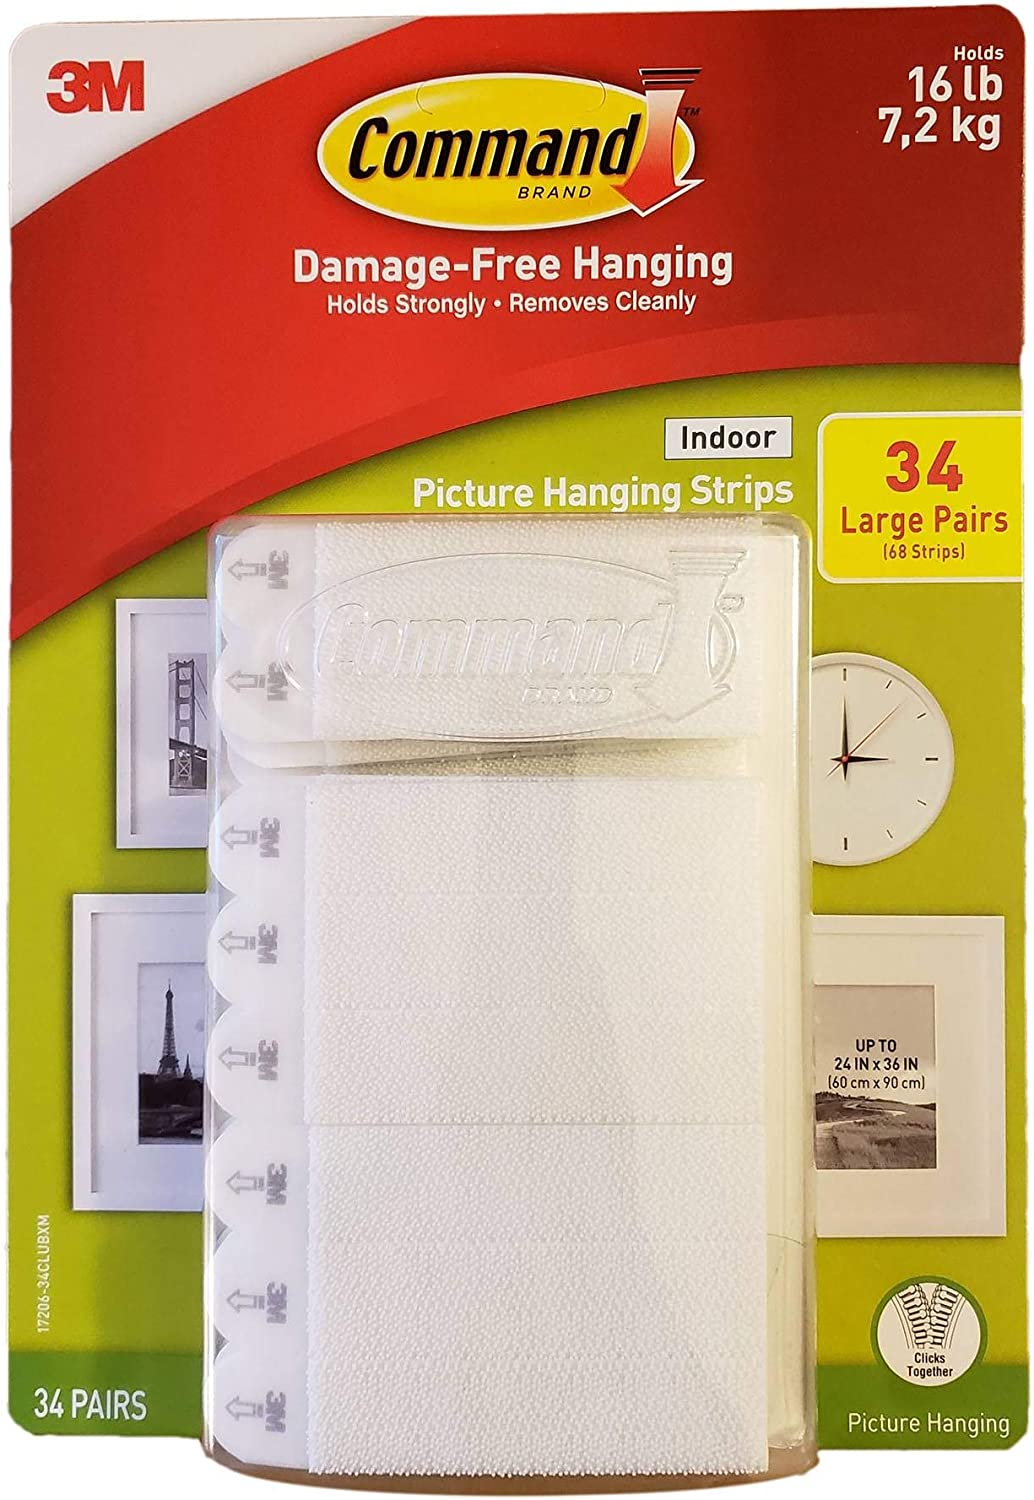 Indoor Picture Hanging Strips 34 Large Pairs 68 Strips